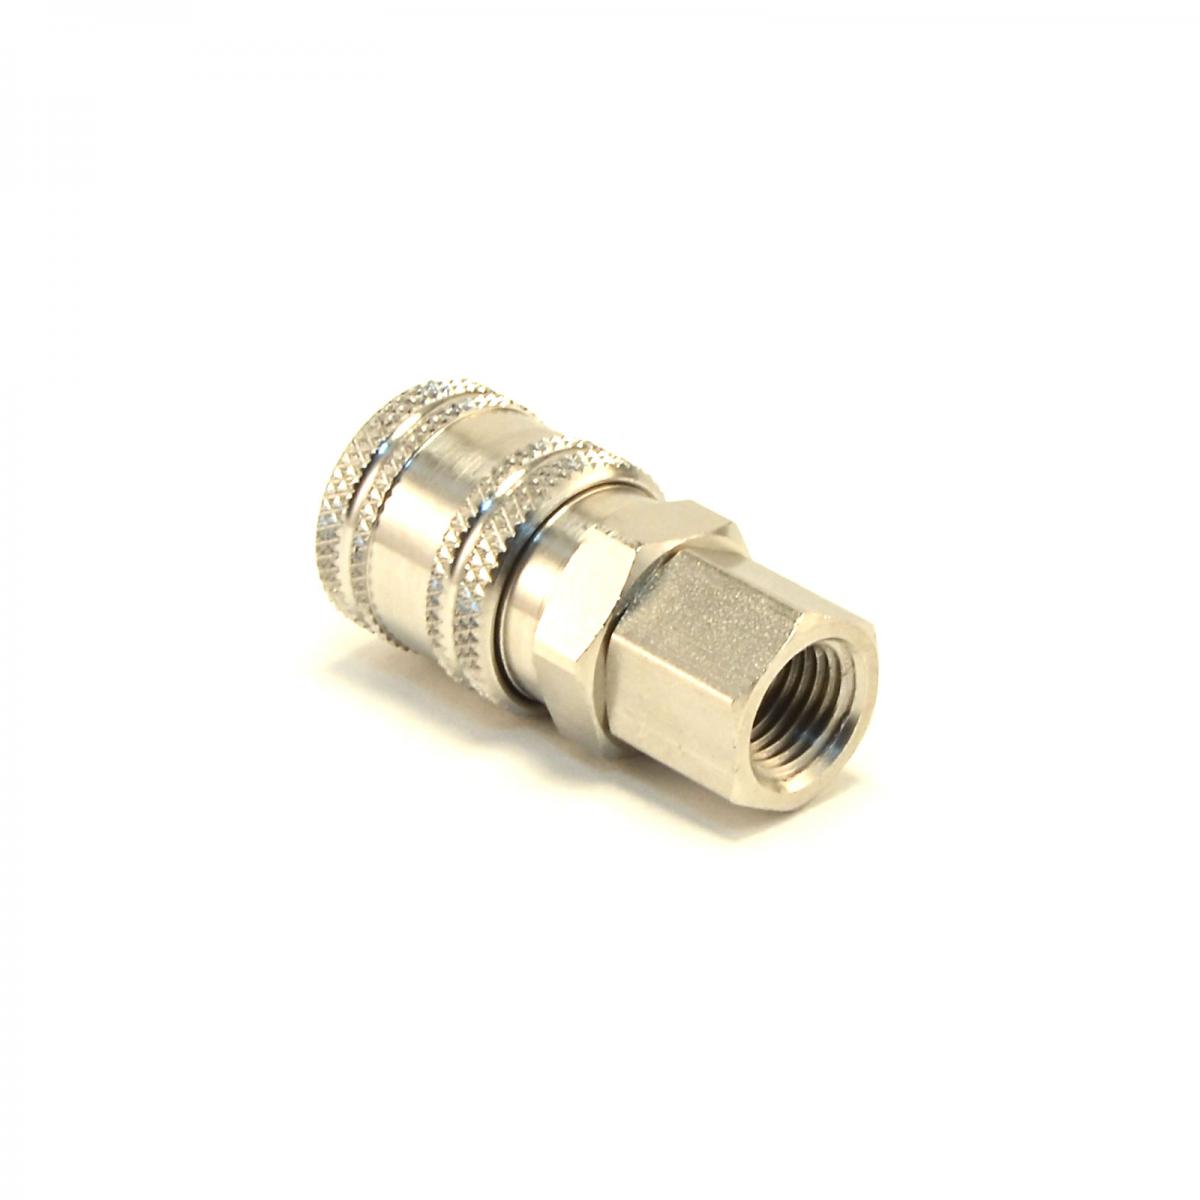 Stainless steel quick connect coupler quot female npt air